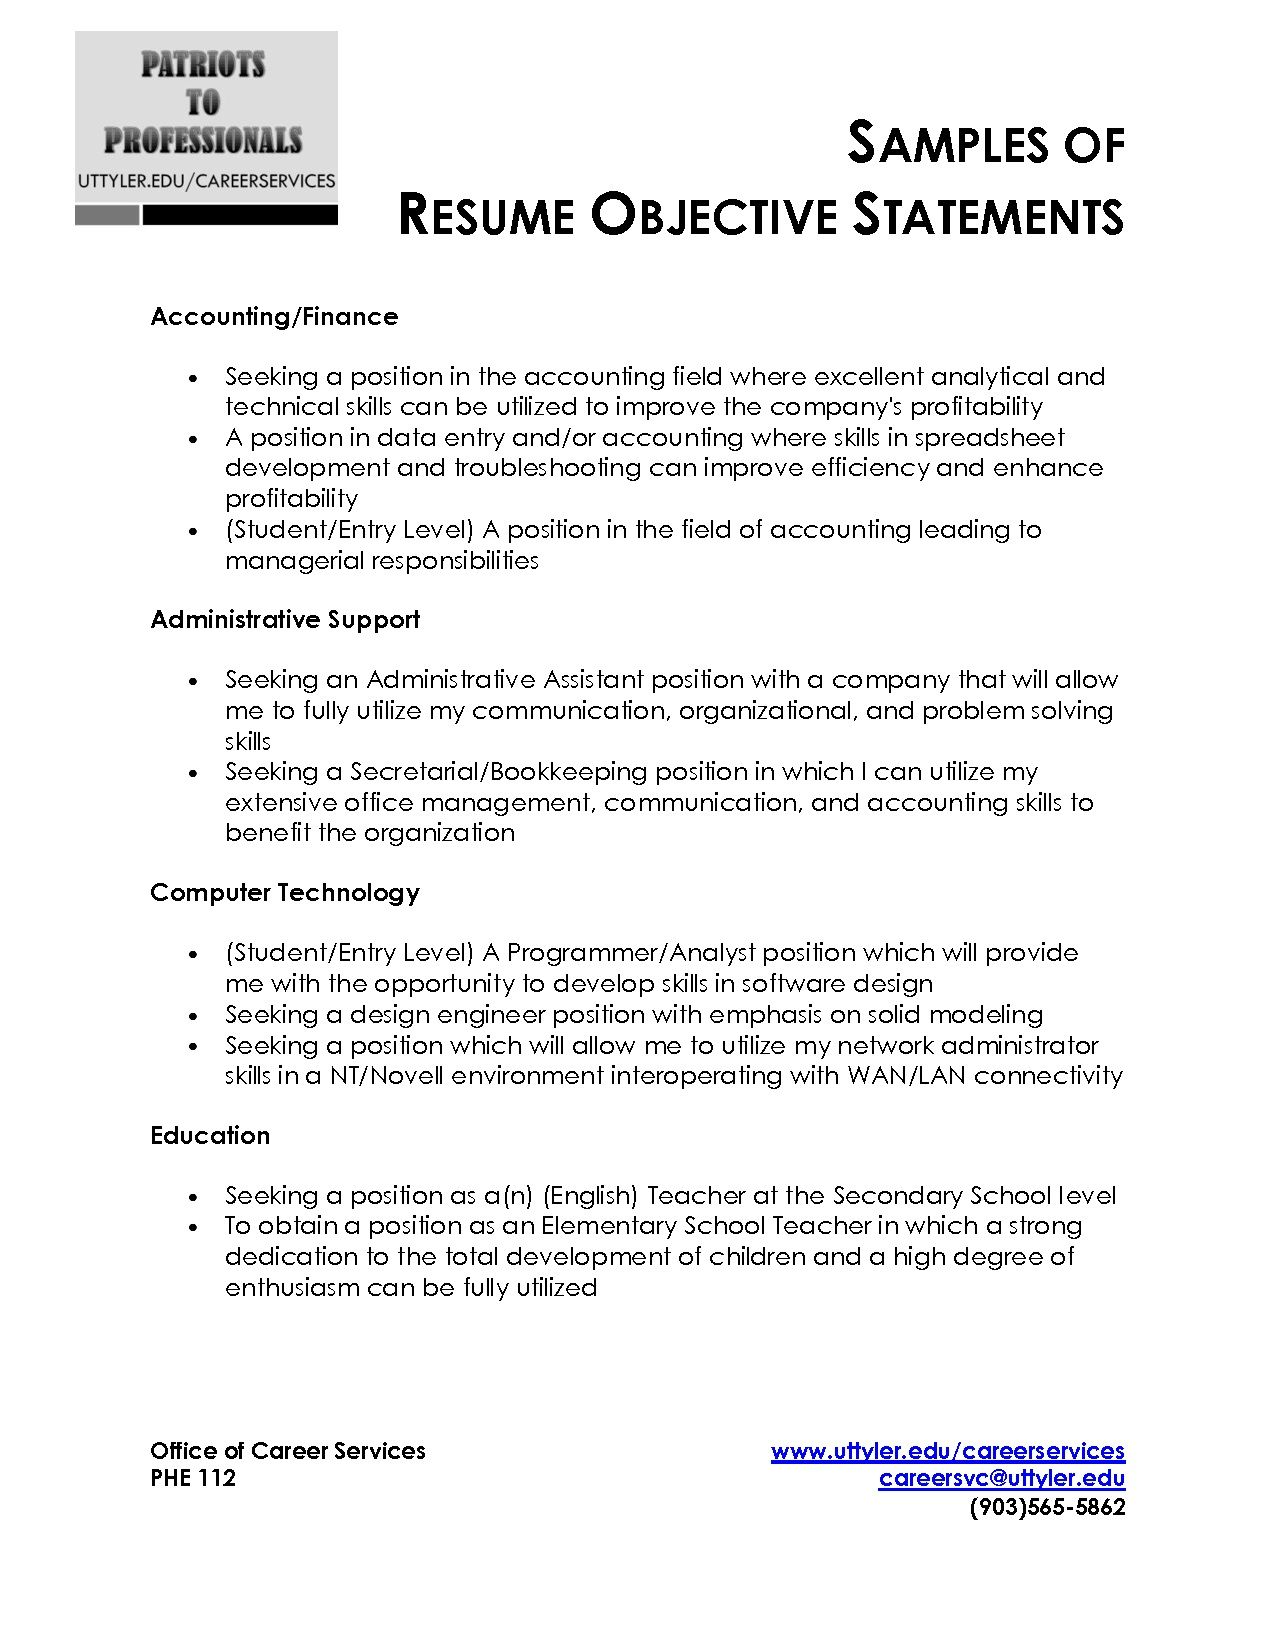 sample resume objective statement free templates examples best statements biography fast Resume Best Resume Objective Statements